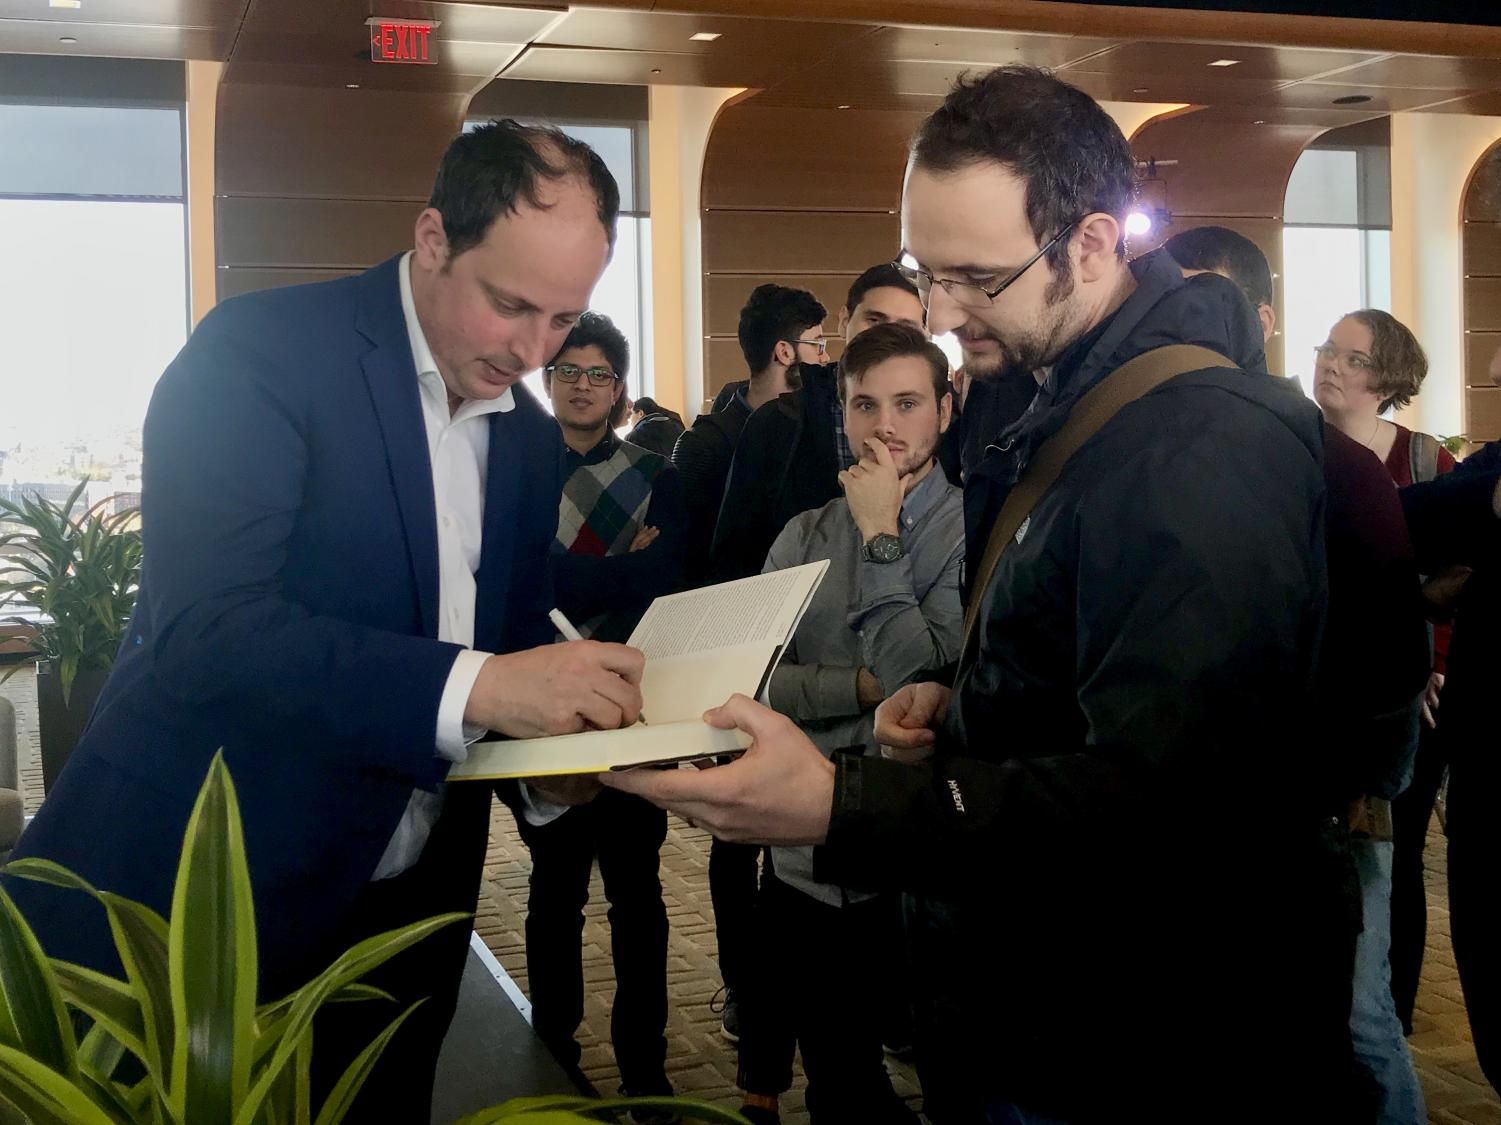 Nate Silver signs a copy of his book after the talk March 27.